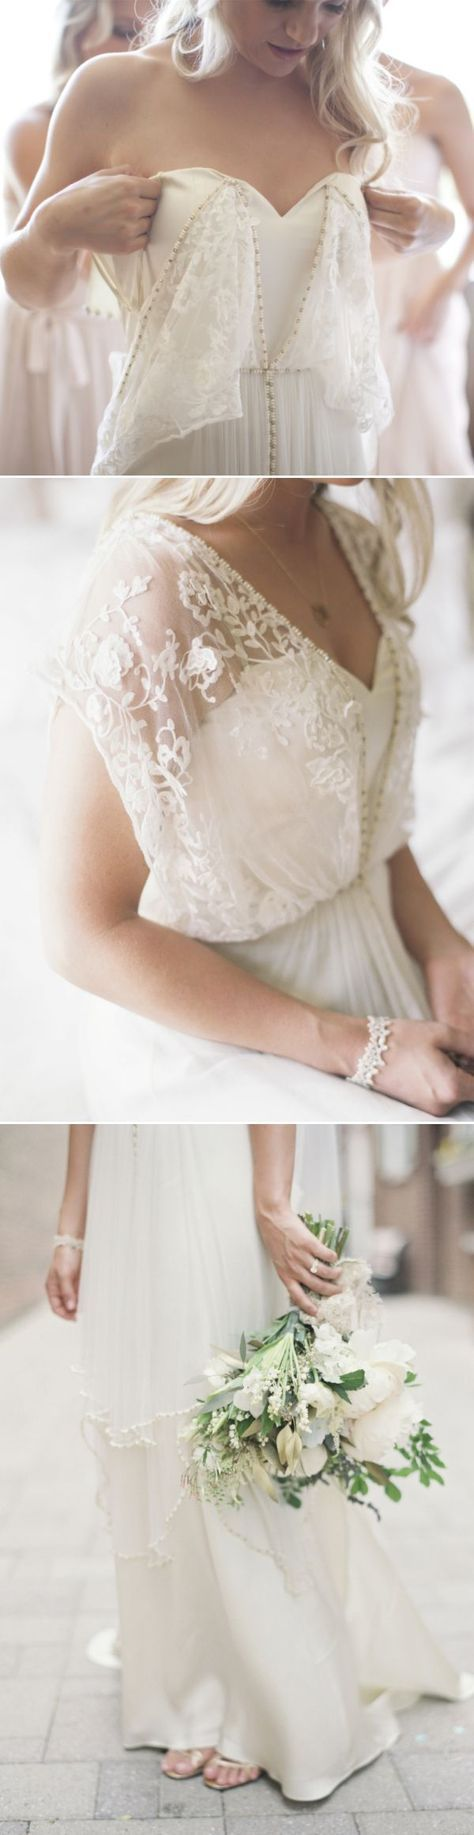 You've found the perfect dress now find your perfect #wedding jewellery with us! www.sylviakerrjewellery.com